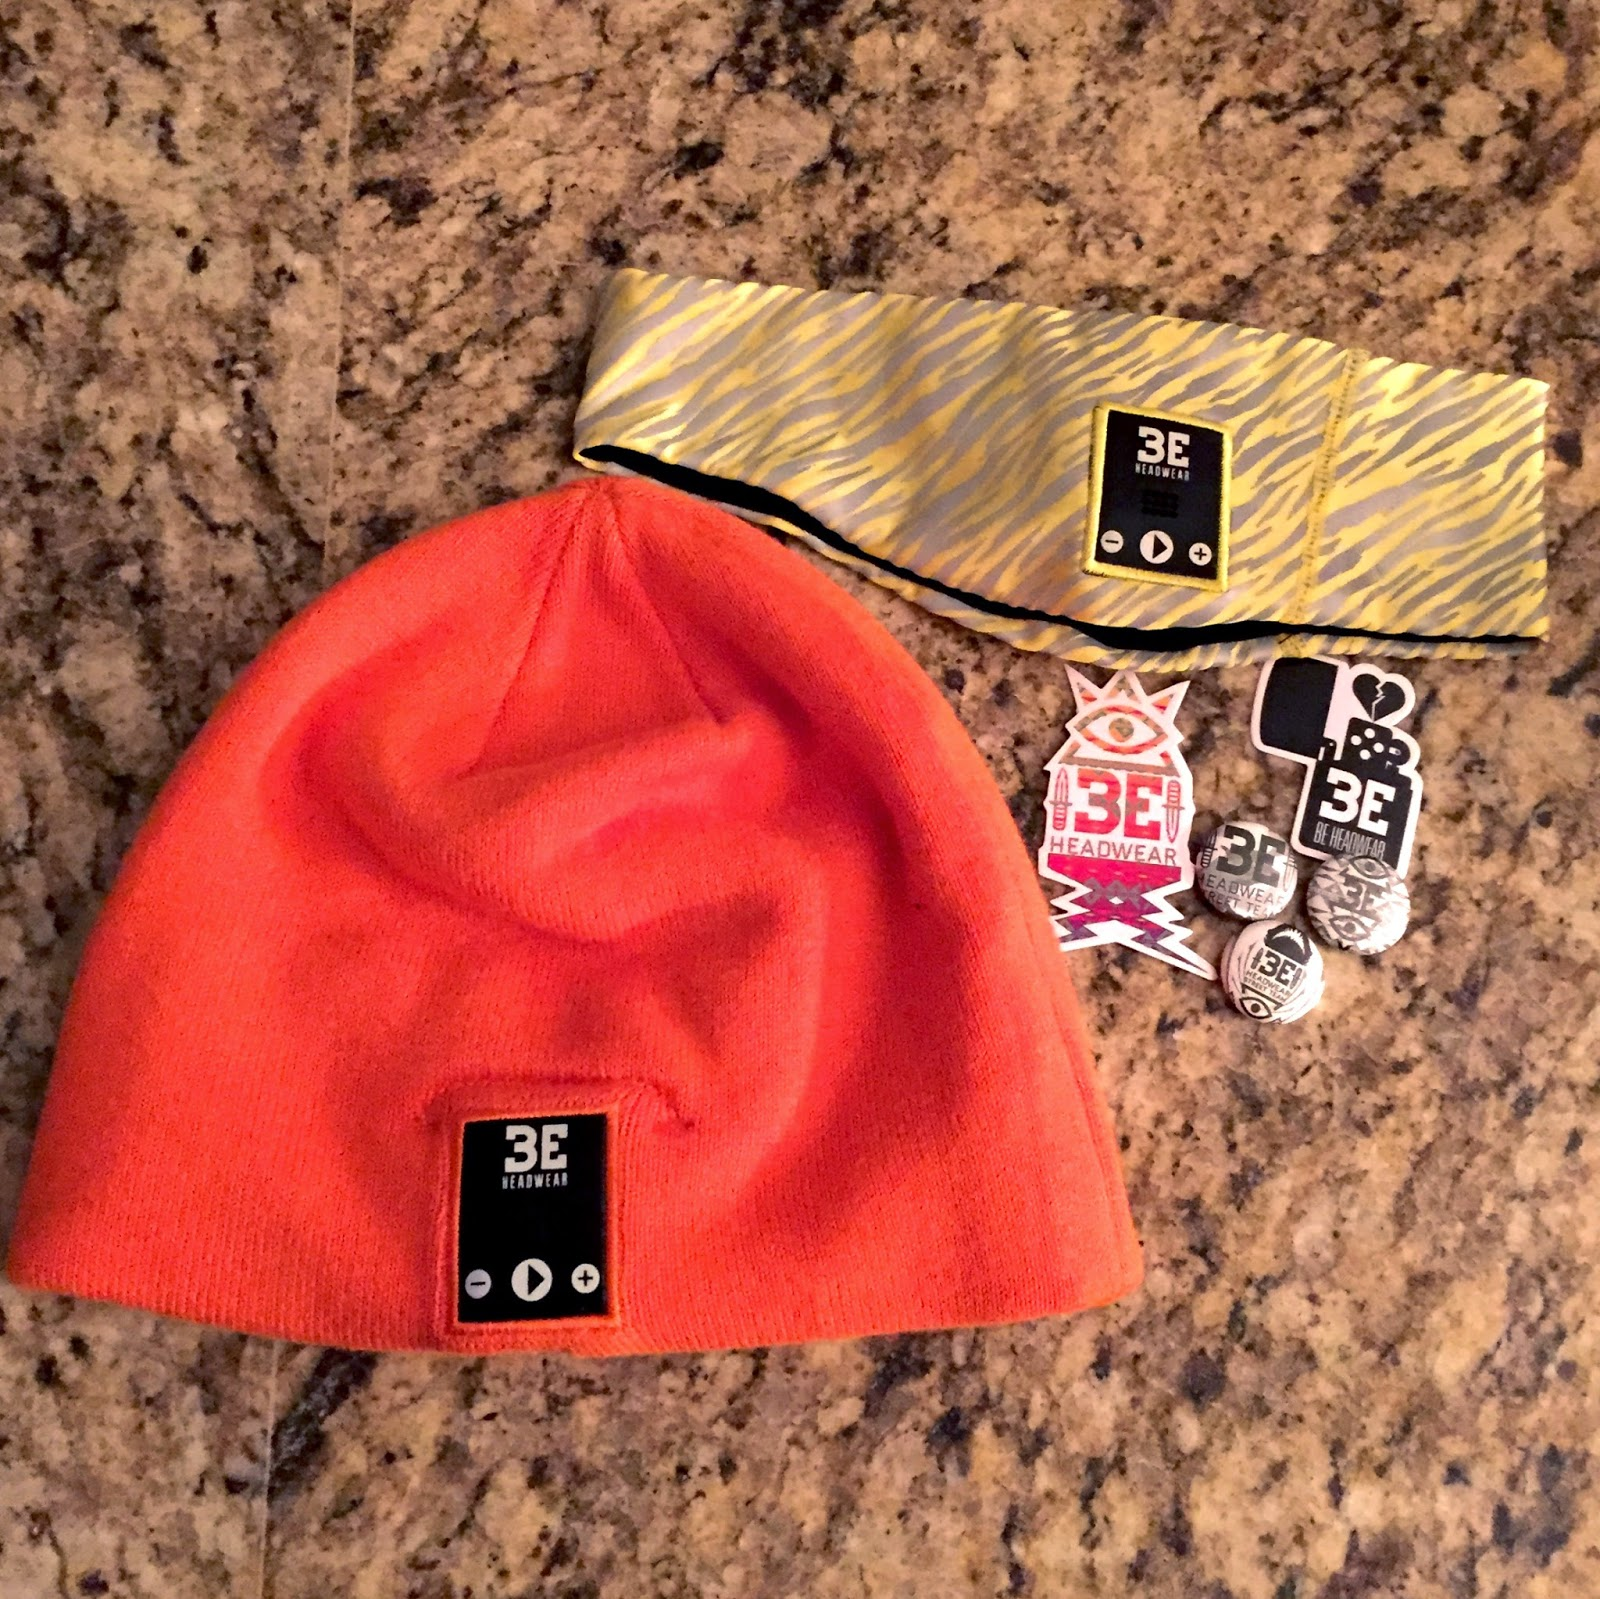 e77860219f1 BE headwear Bluetooth Beanies Review AND Giveaway